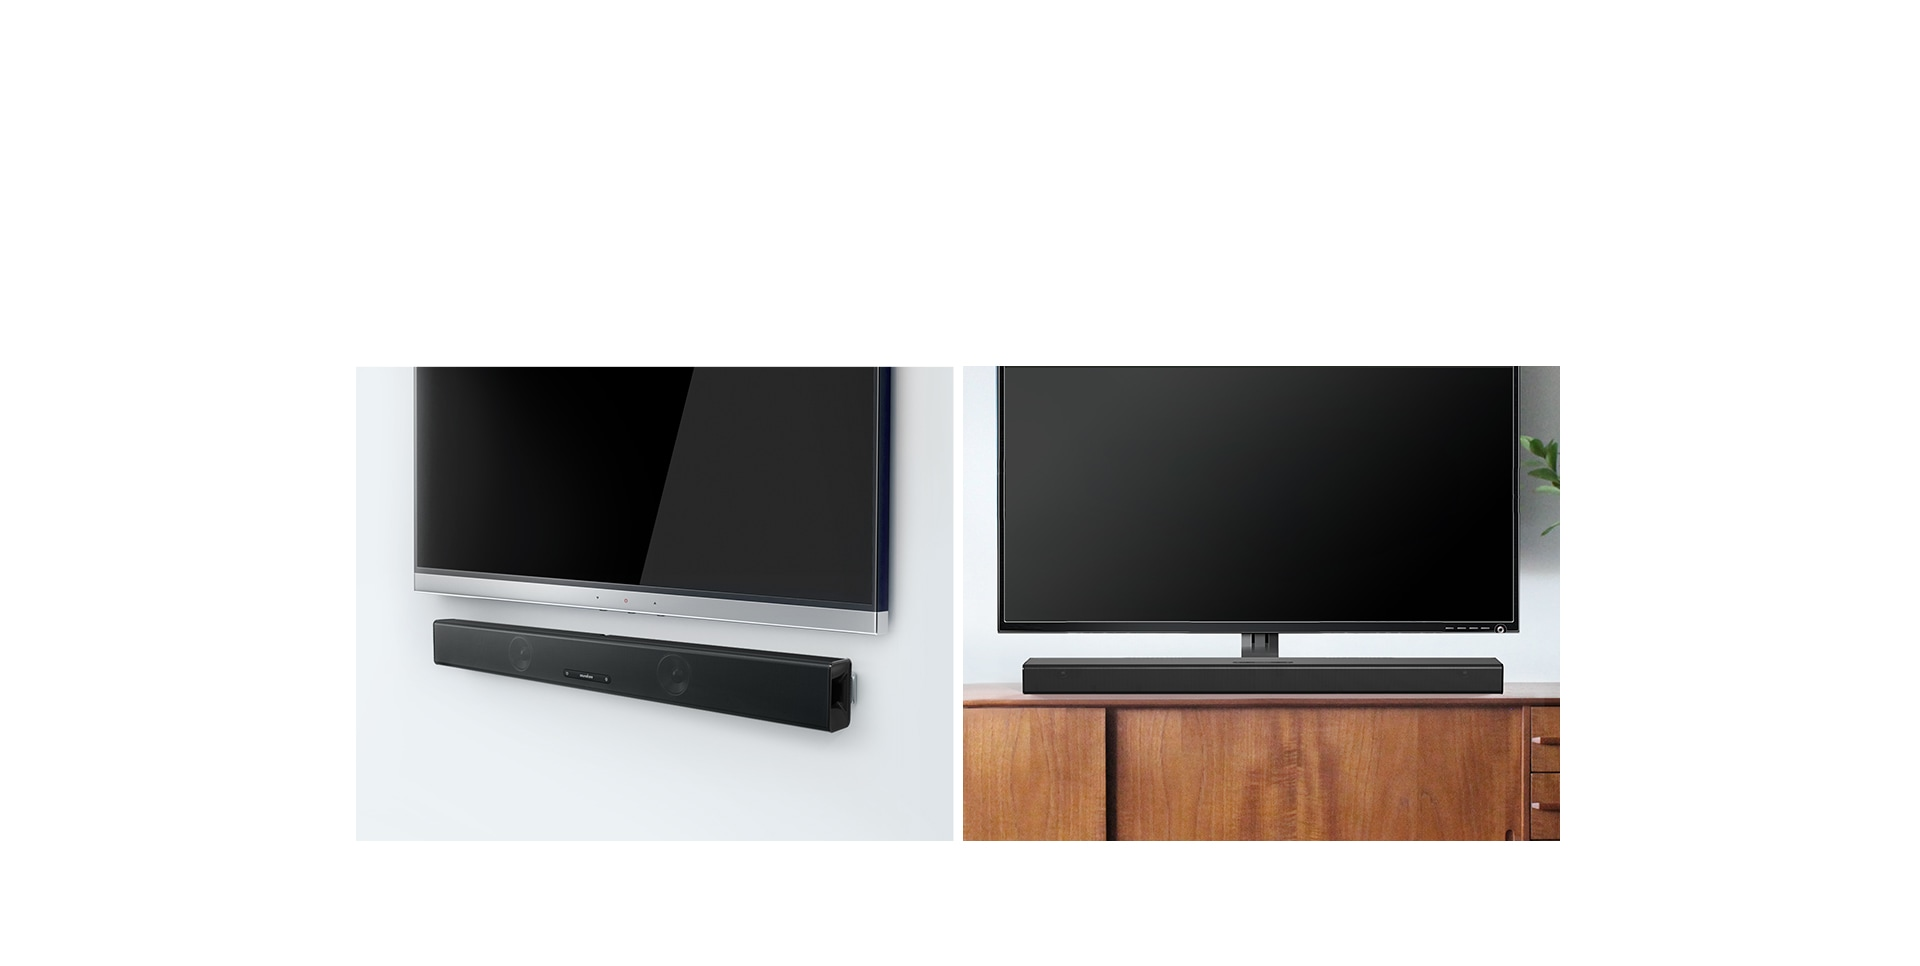 Soundcore Infini No Picture And Audio On My Tv Flexible Placement